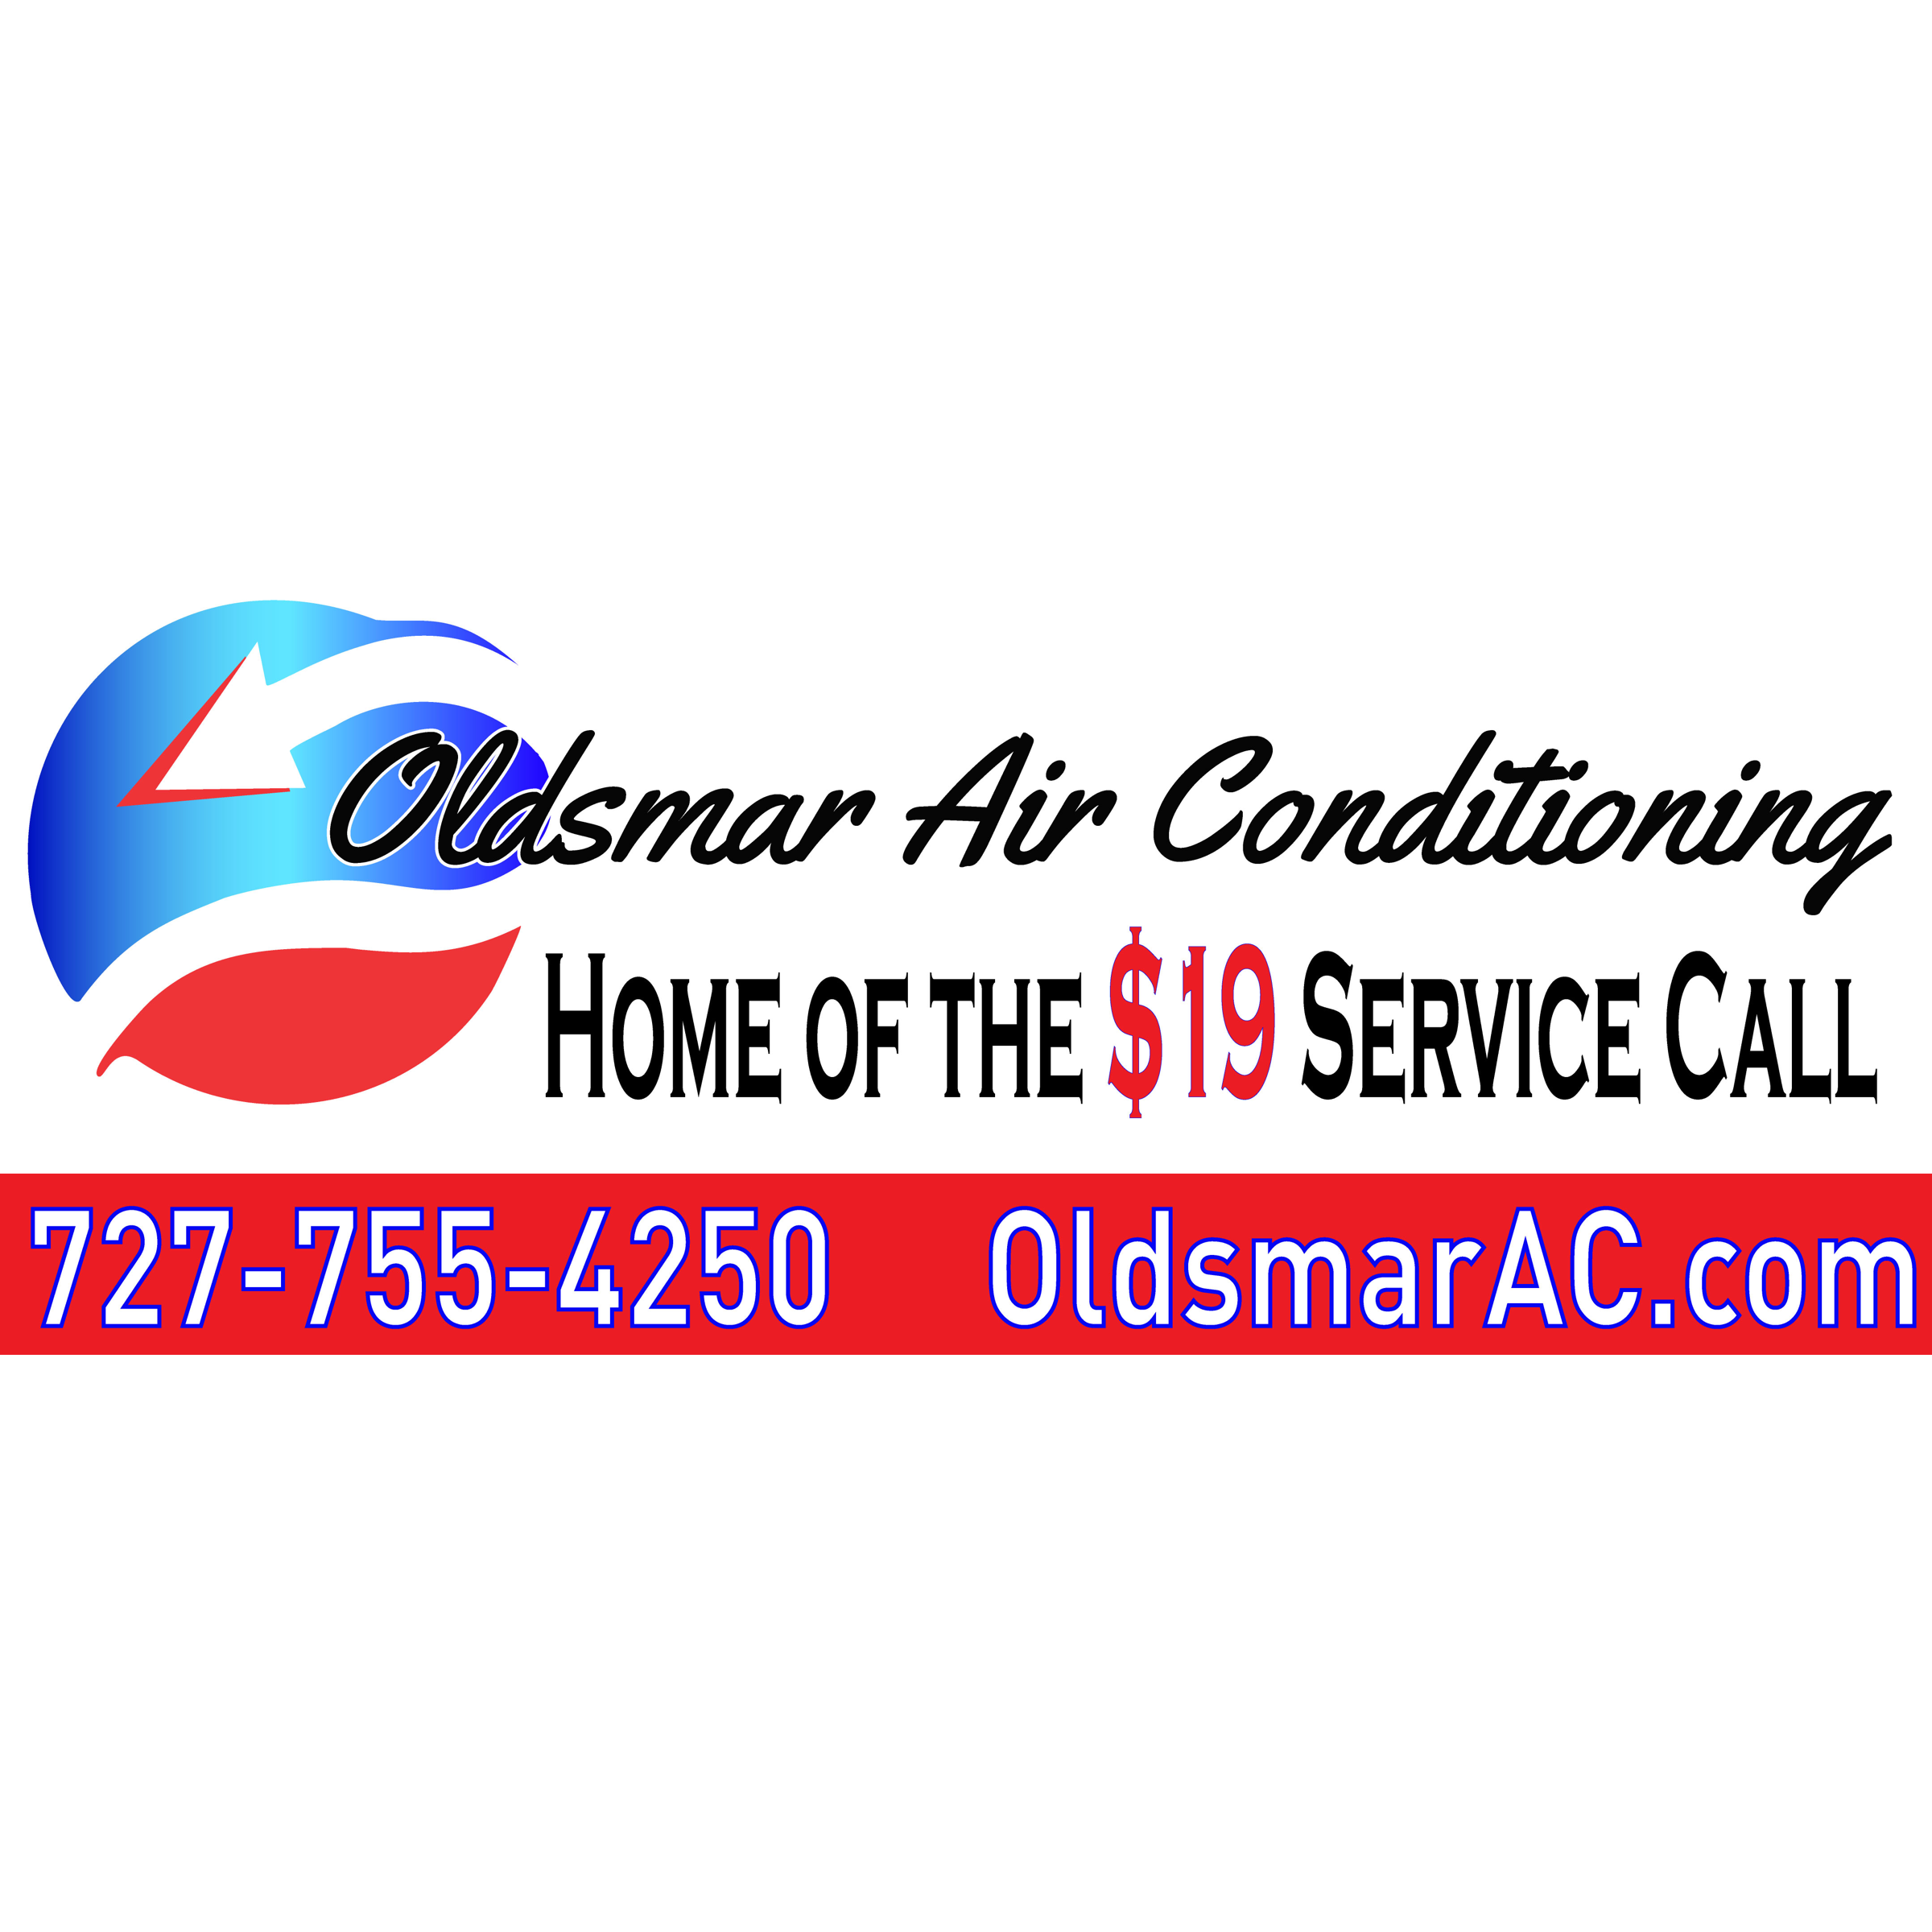 Oldsmar Air Conditioning